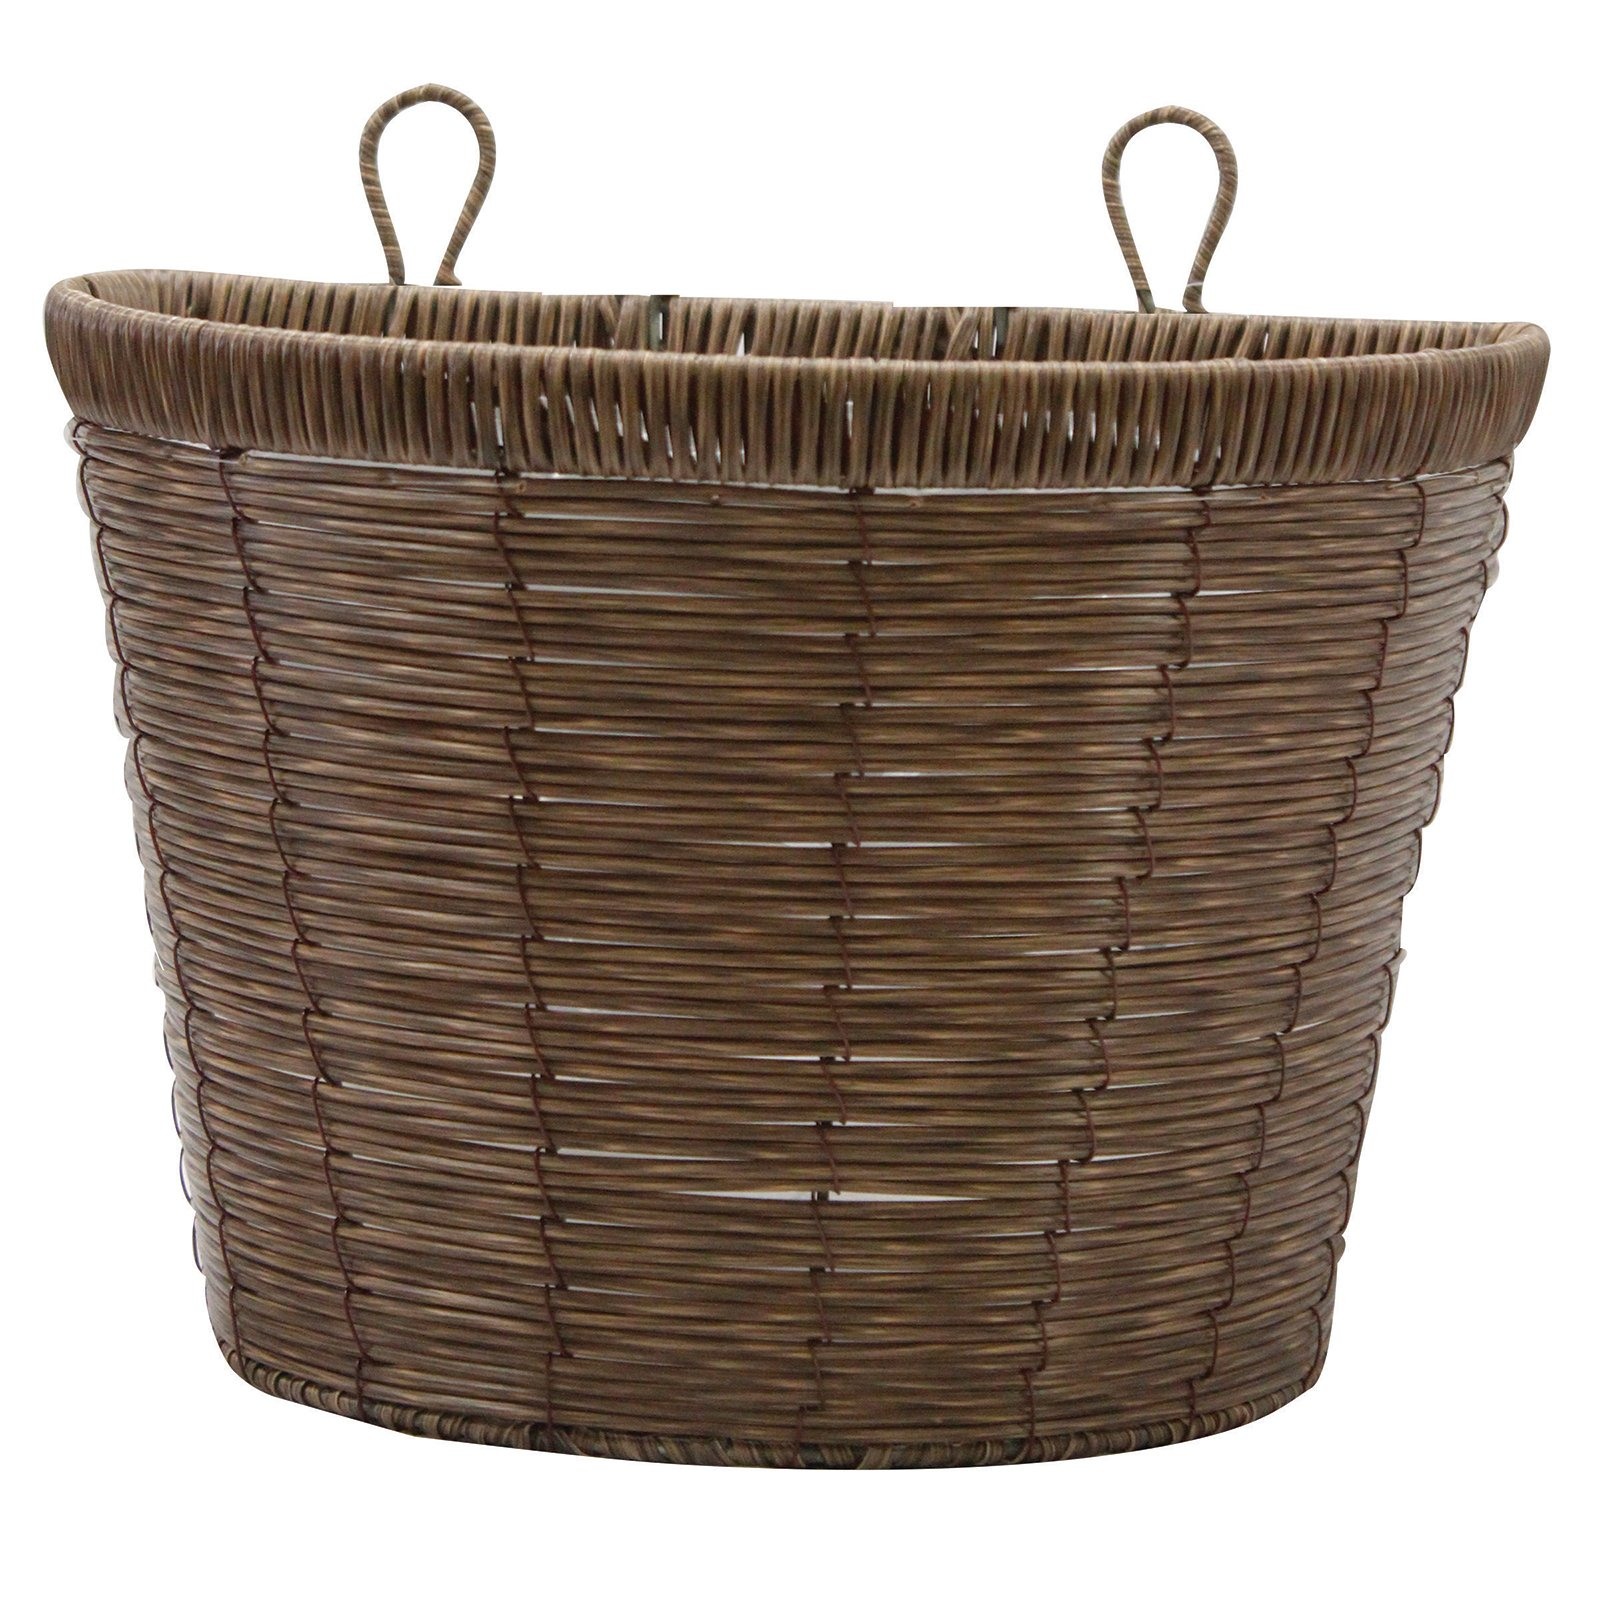 Gardman R258 Faux Natural Brown Rattan Wall Basket, 11'' x 7.7'' x 8''